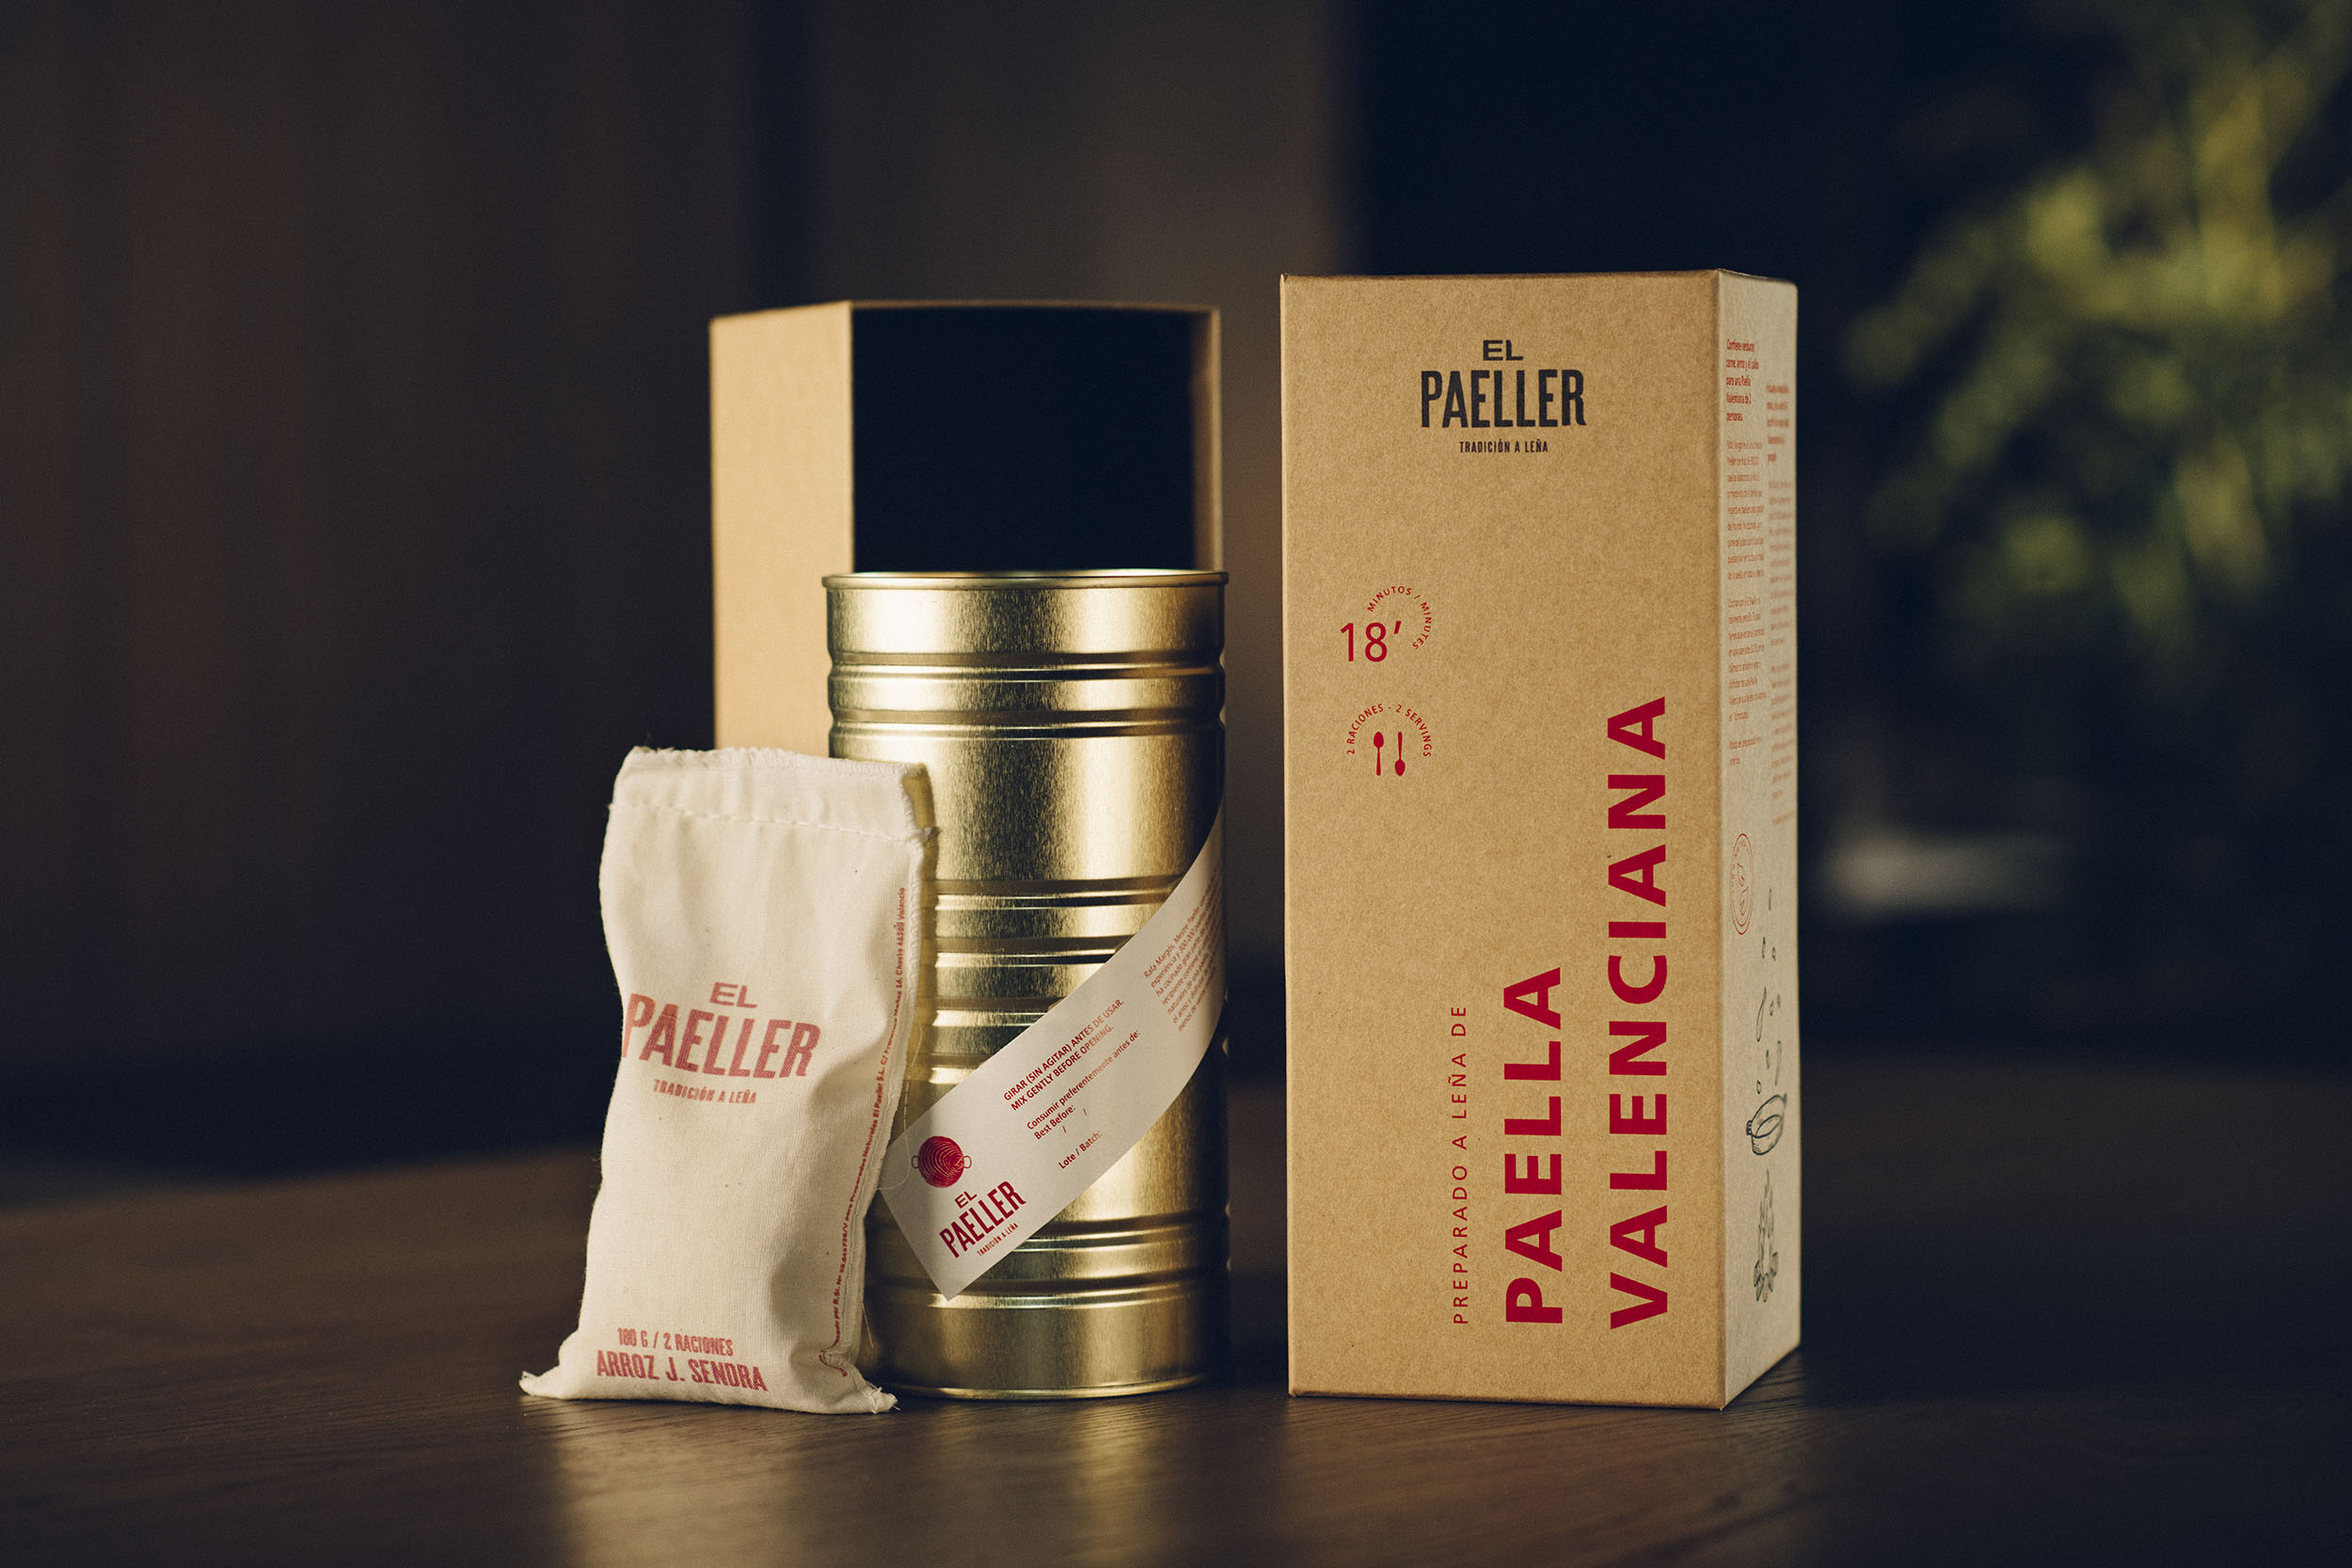 Paeller producto26911-1